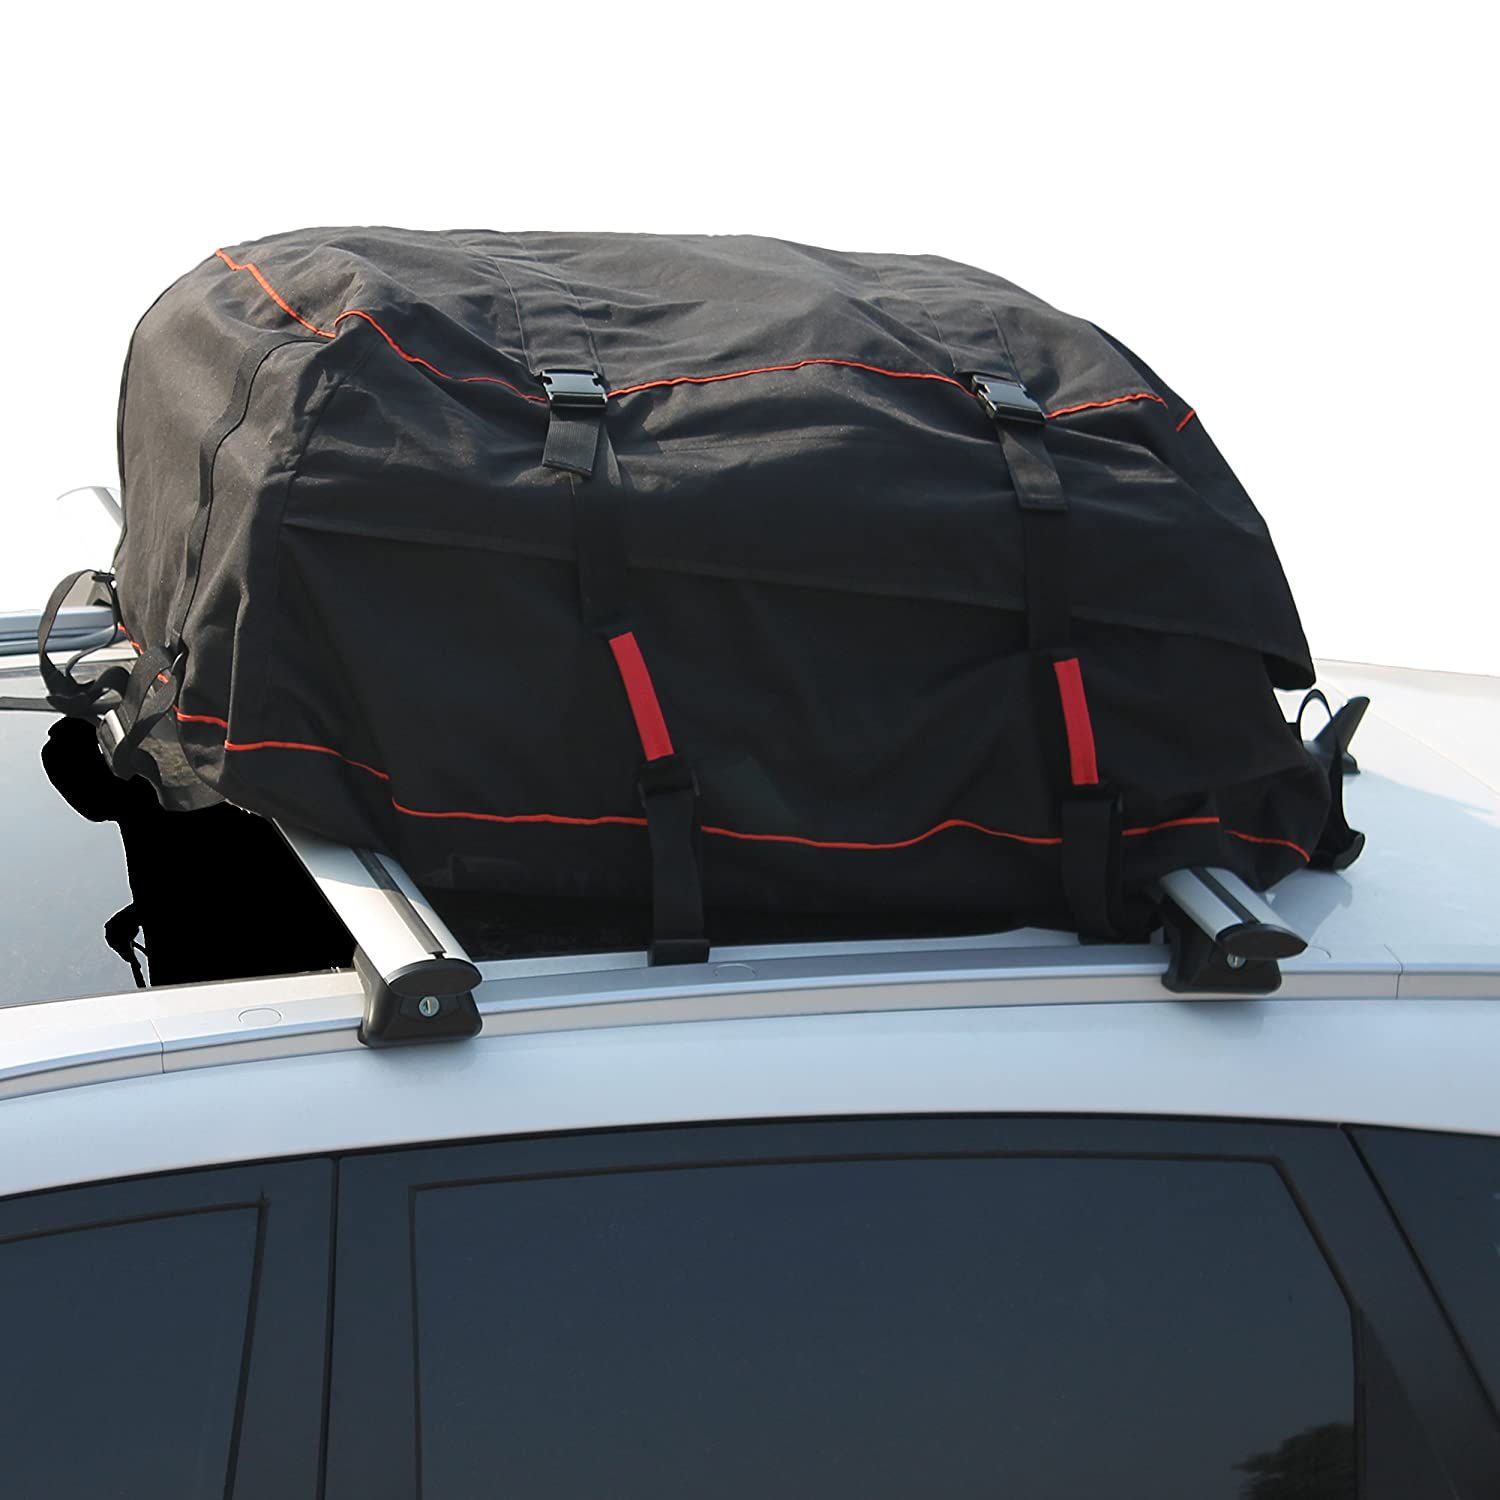 Iztor Car Top Carrier Waterproof Roof Top Cargo Rack 9 Cubic Feet Storage Box Roof Top Bag for Travel and Luggage Transportation